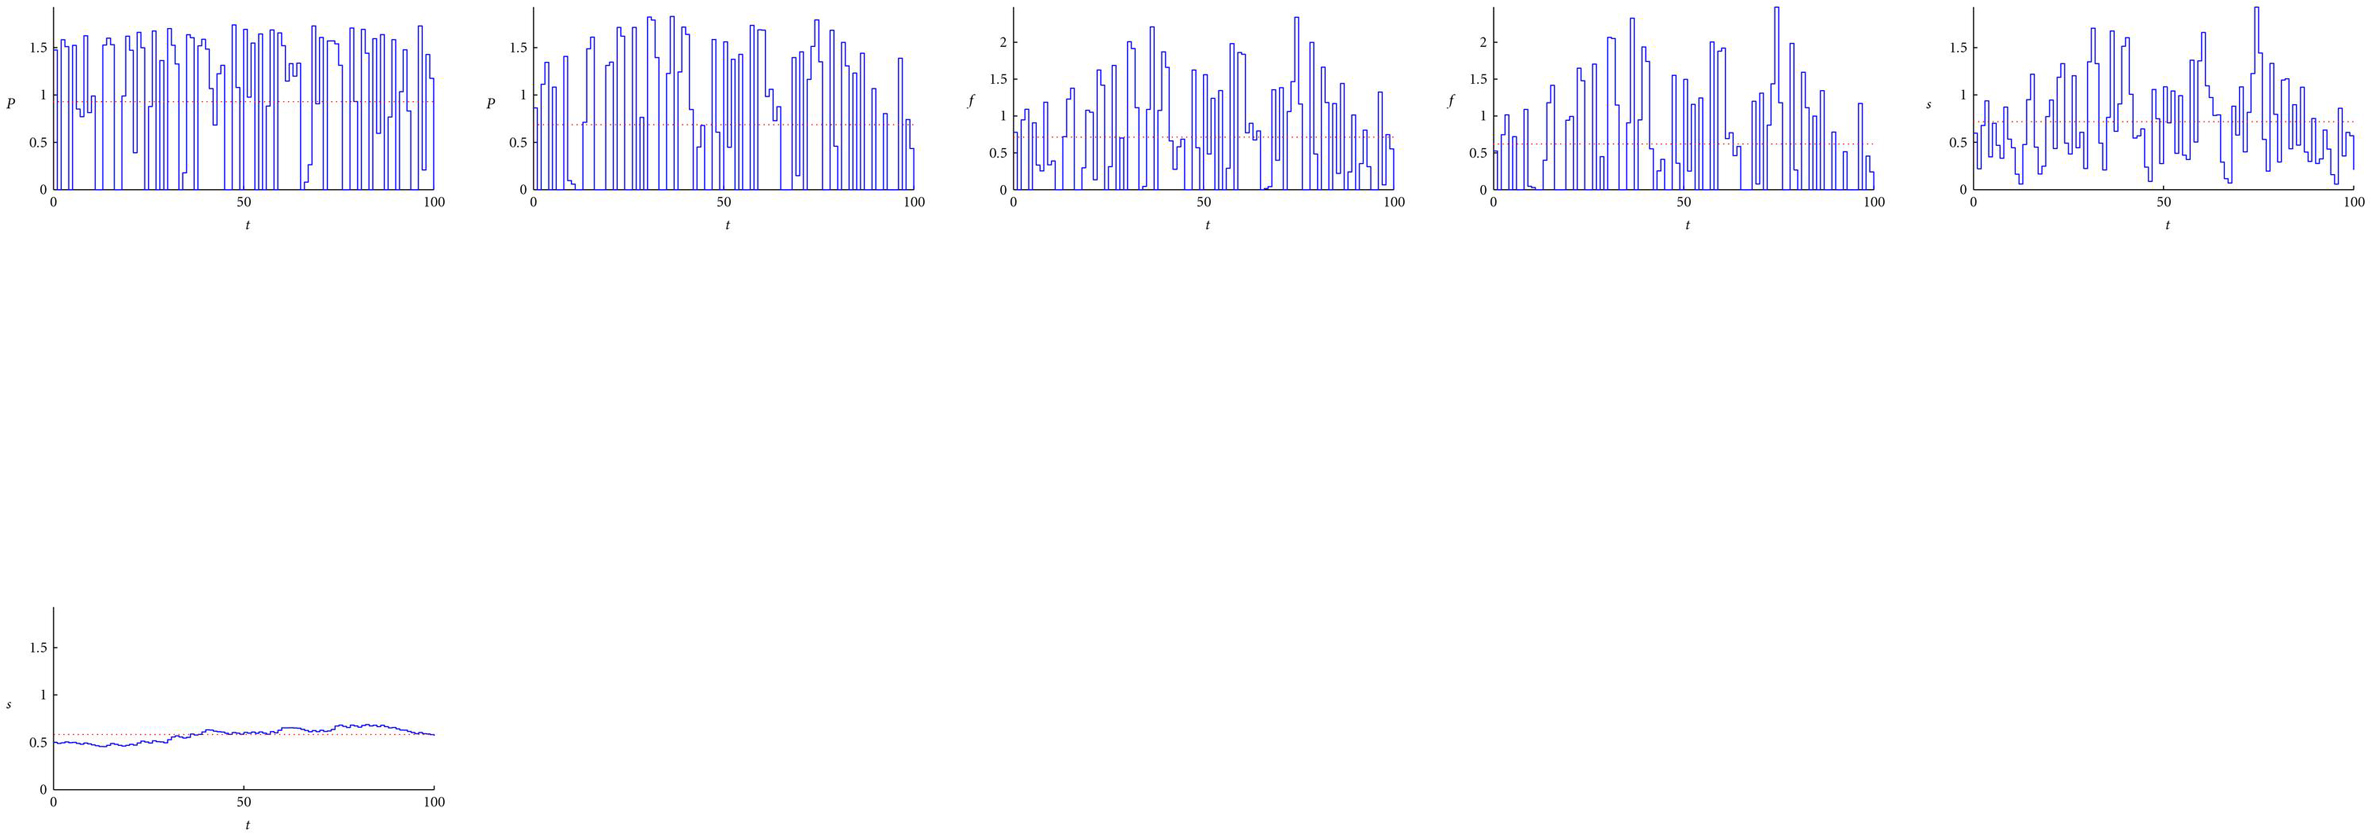 http://static-content.springer.com/image/art%3A10.1155%2F2010%2F815213/MediaObjects/13638_2010_Article_2032_Fig4_HTML.jpg